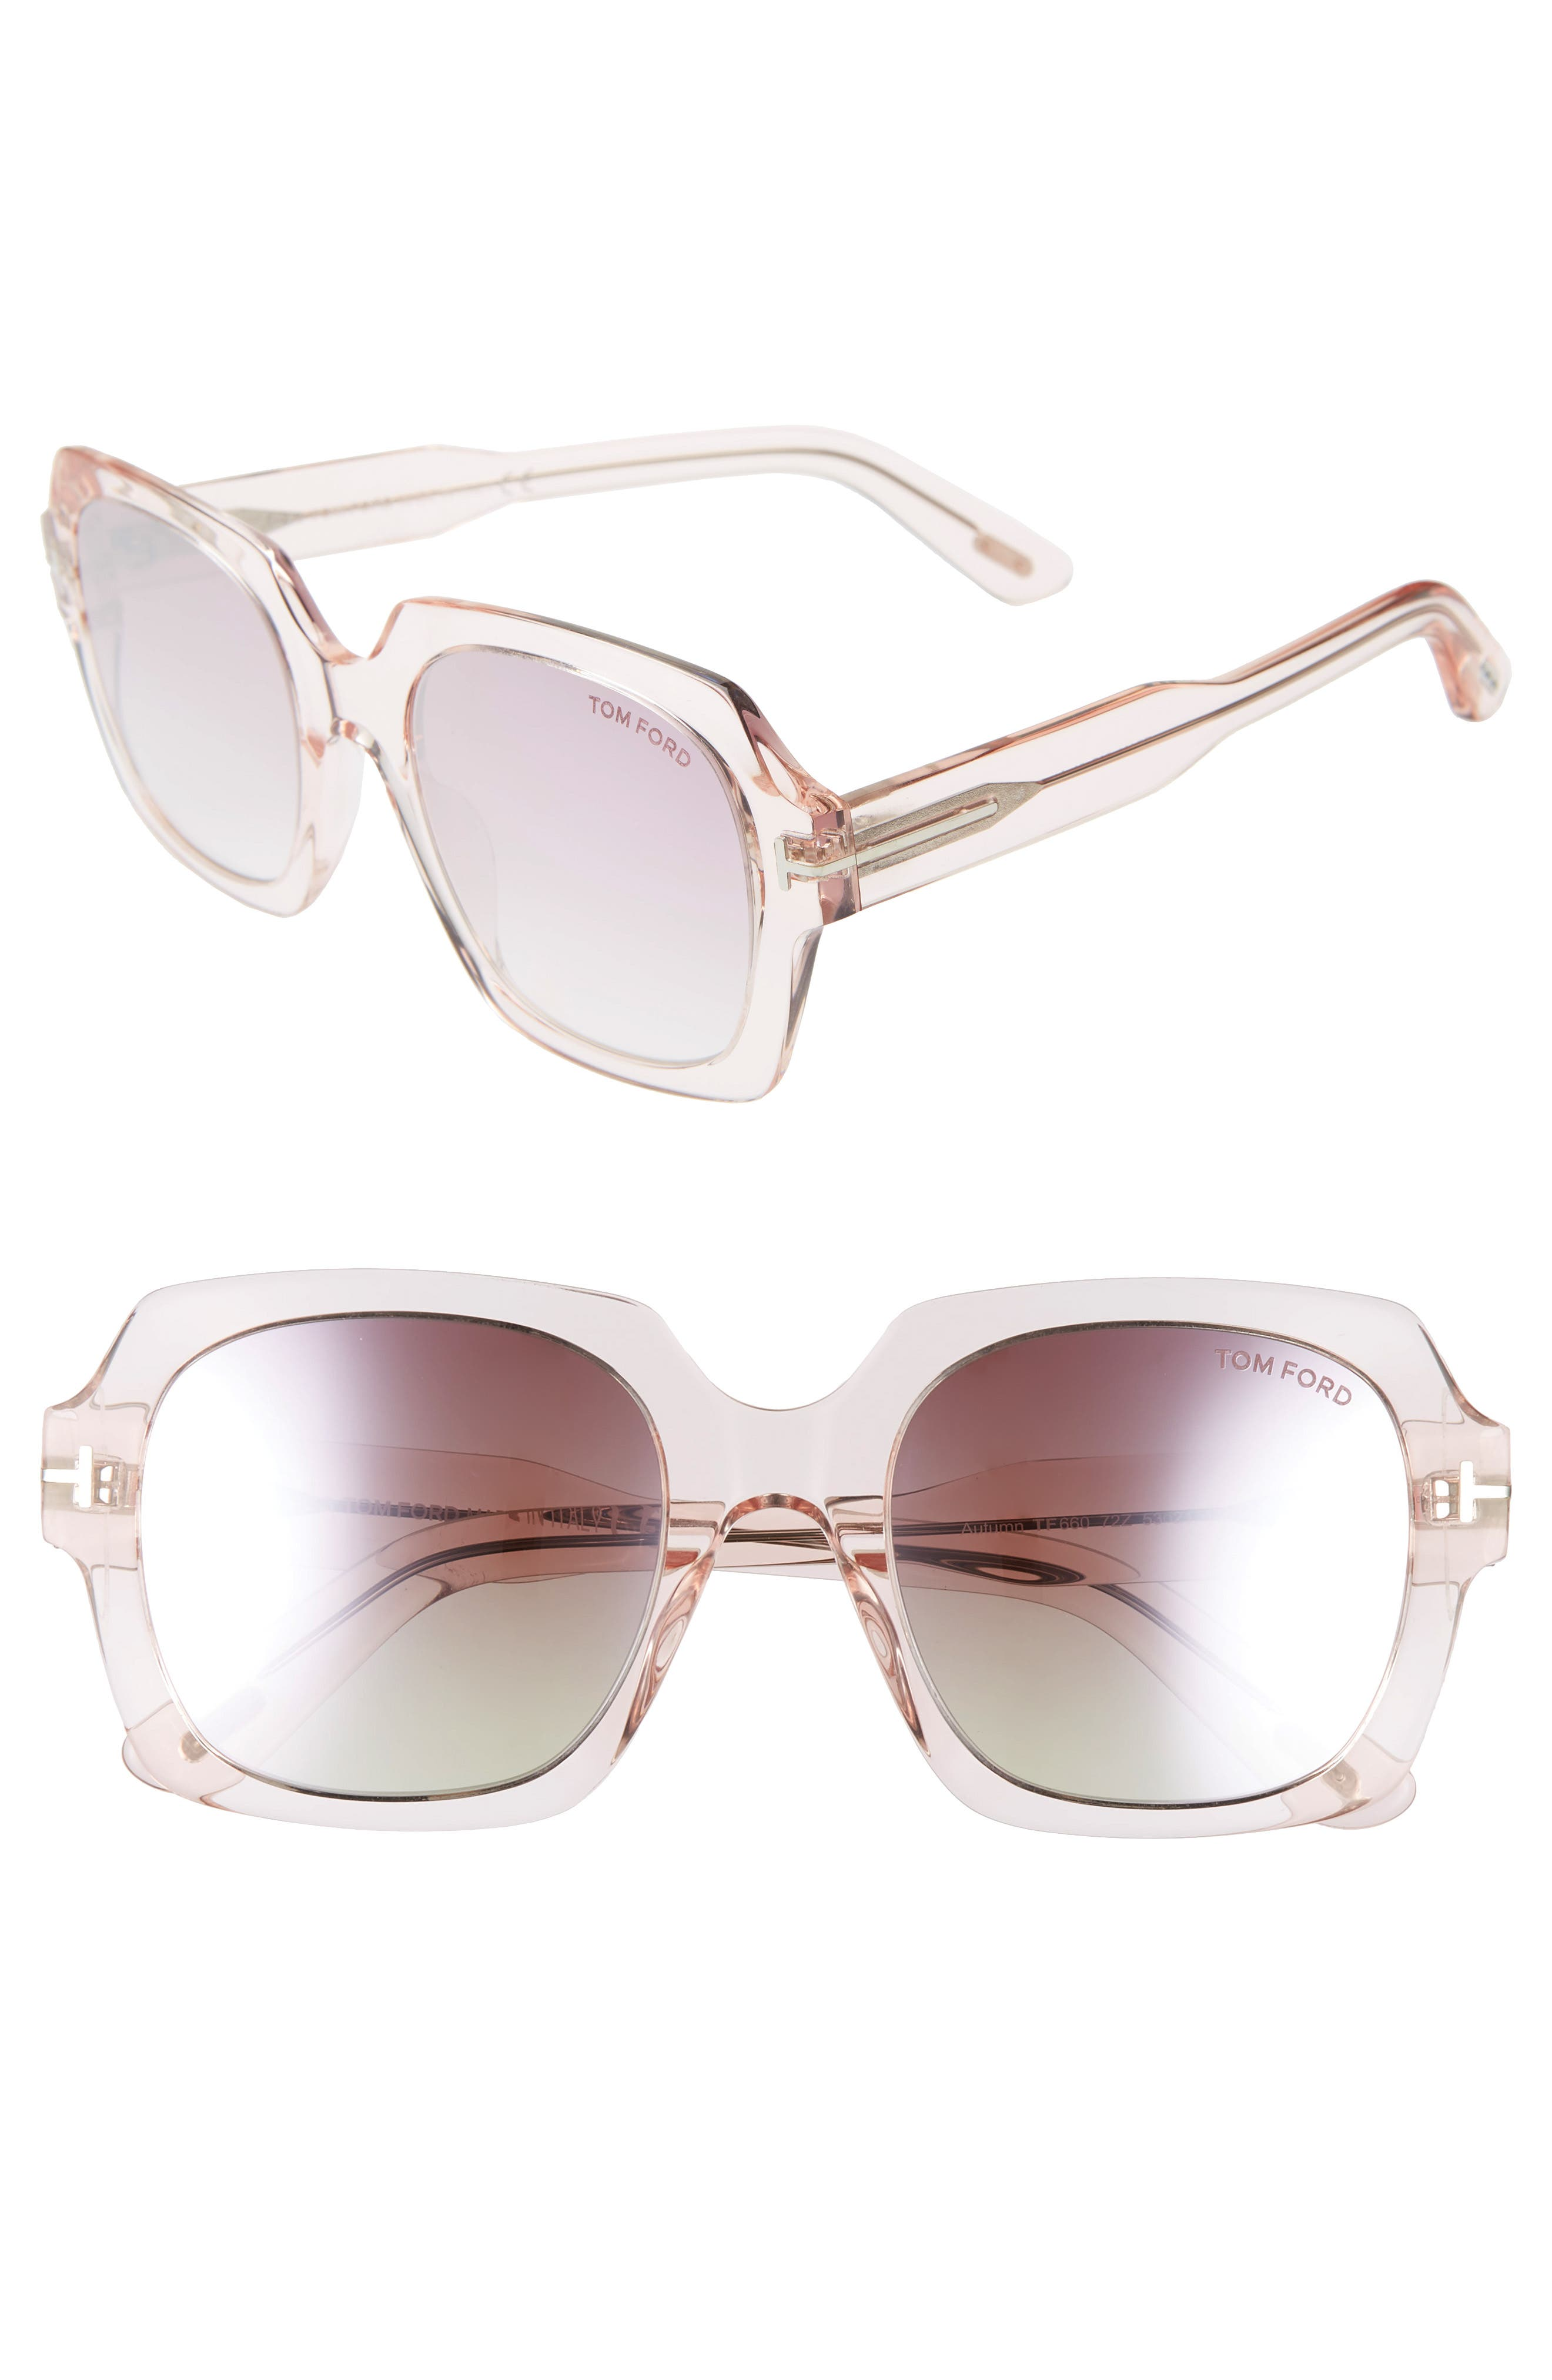 Image of Tom Ford Autumn 53mm Square Sunglasses